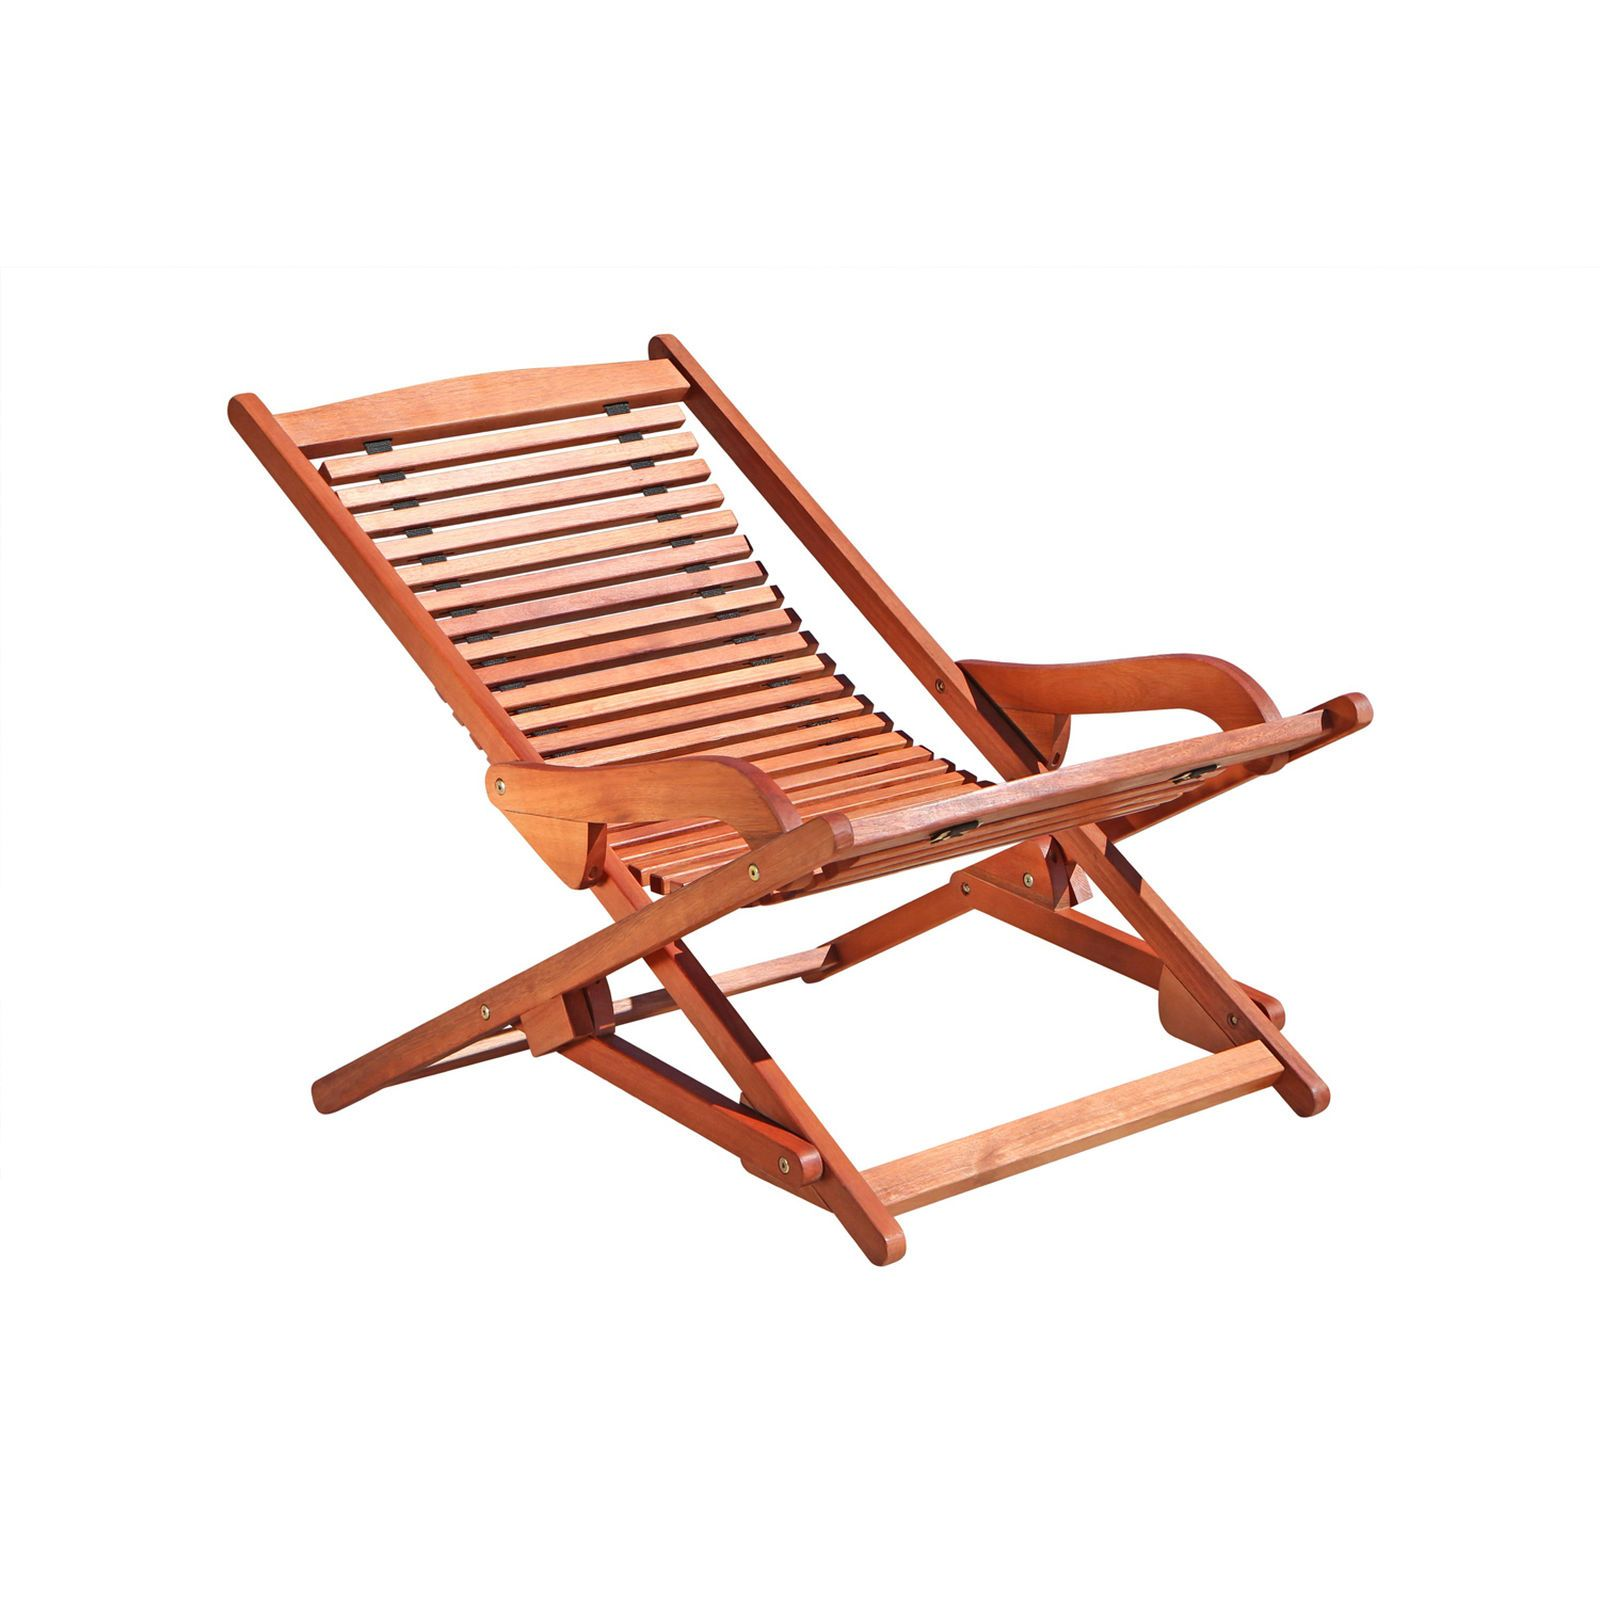 Null Lounge Chair Outdoor Outdoor Wood Outdoor Chairs